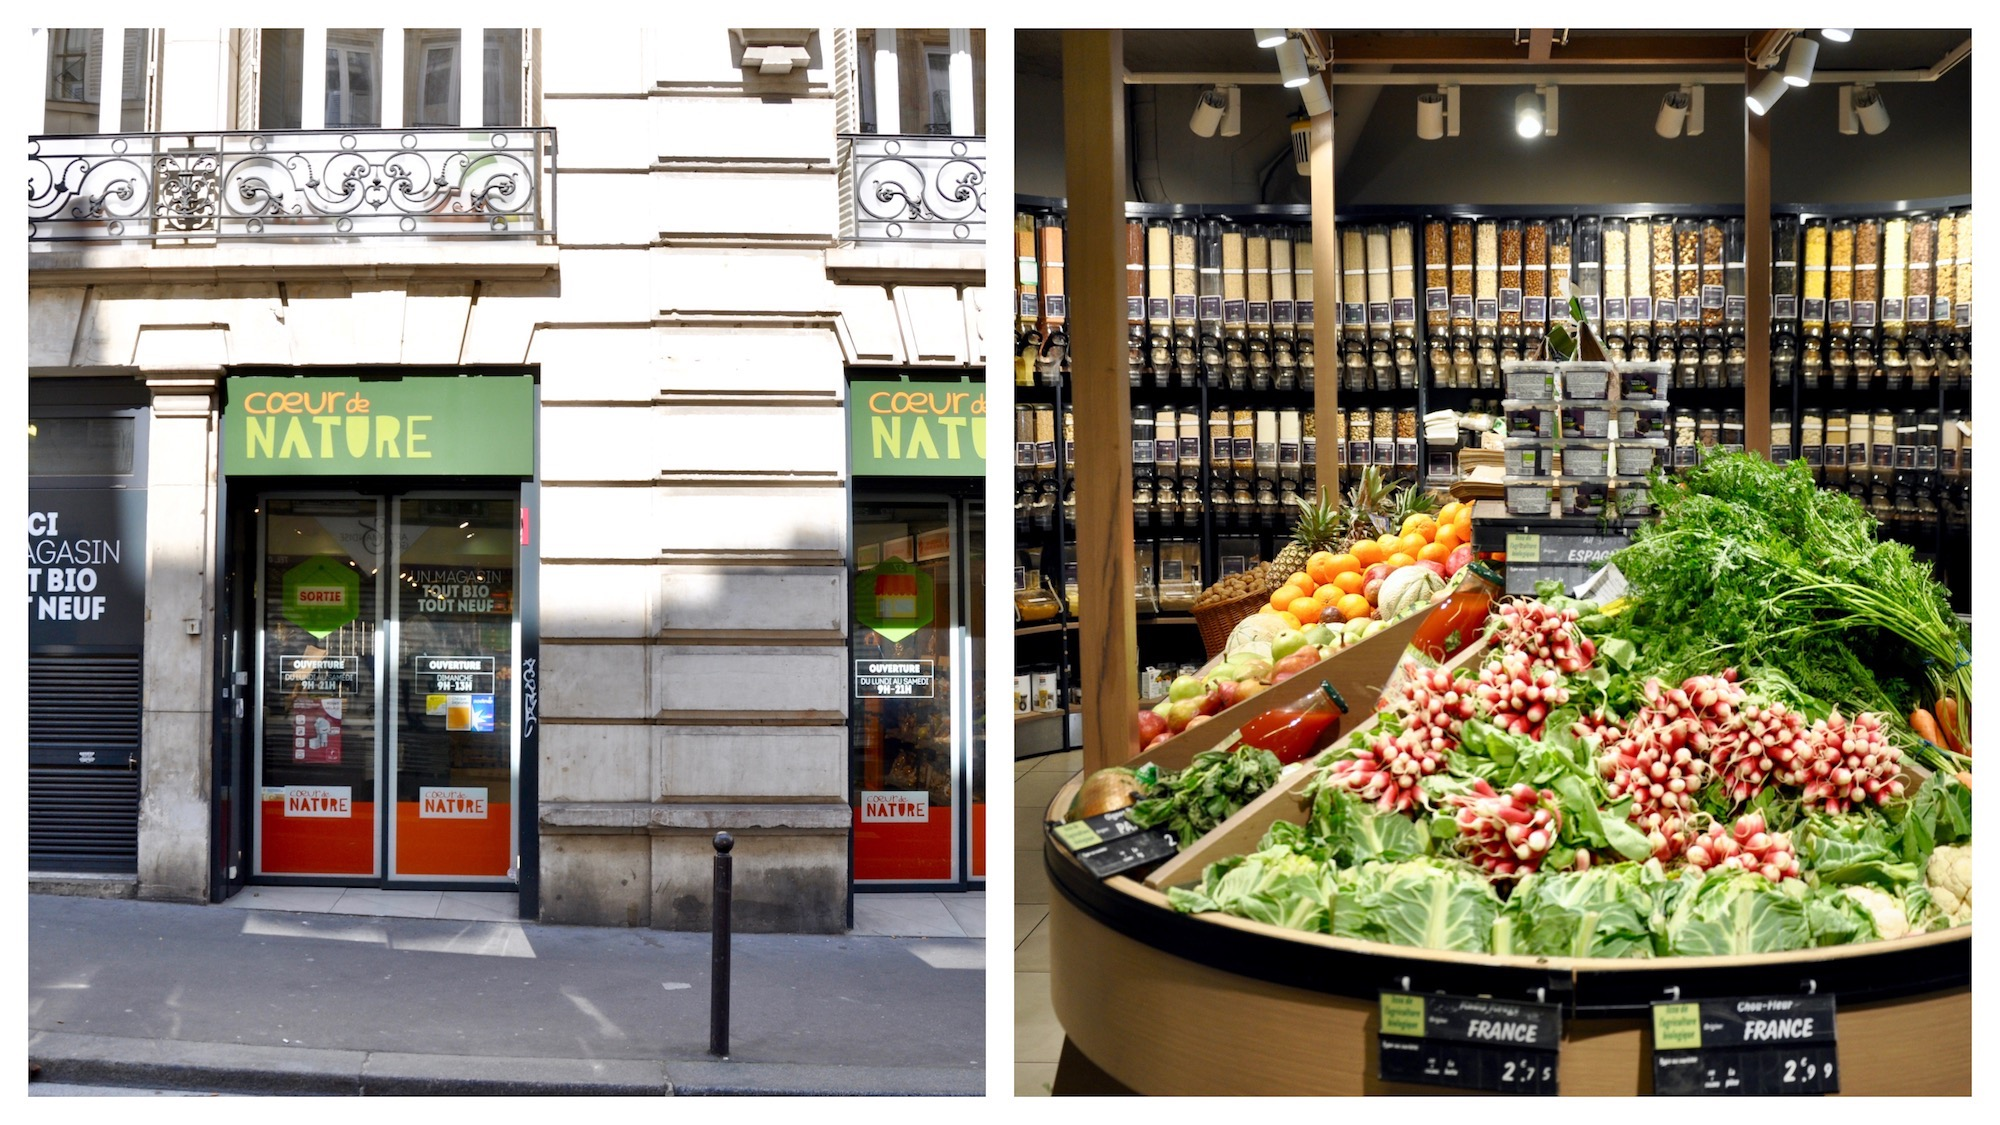 A great place to shop for organic food close to Gare du Nord in Paris is Coeur Nature.